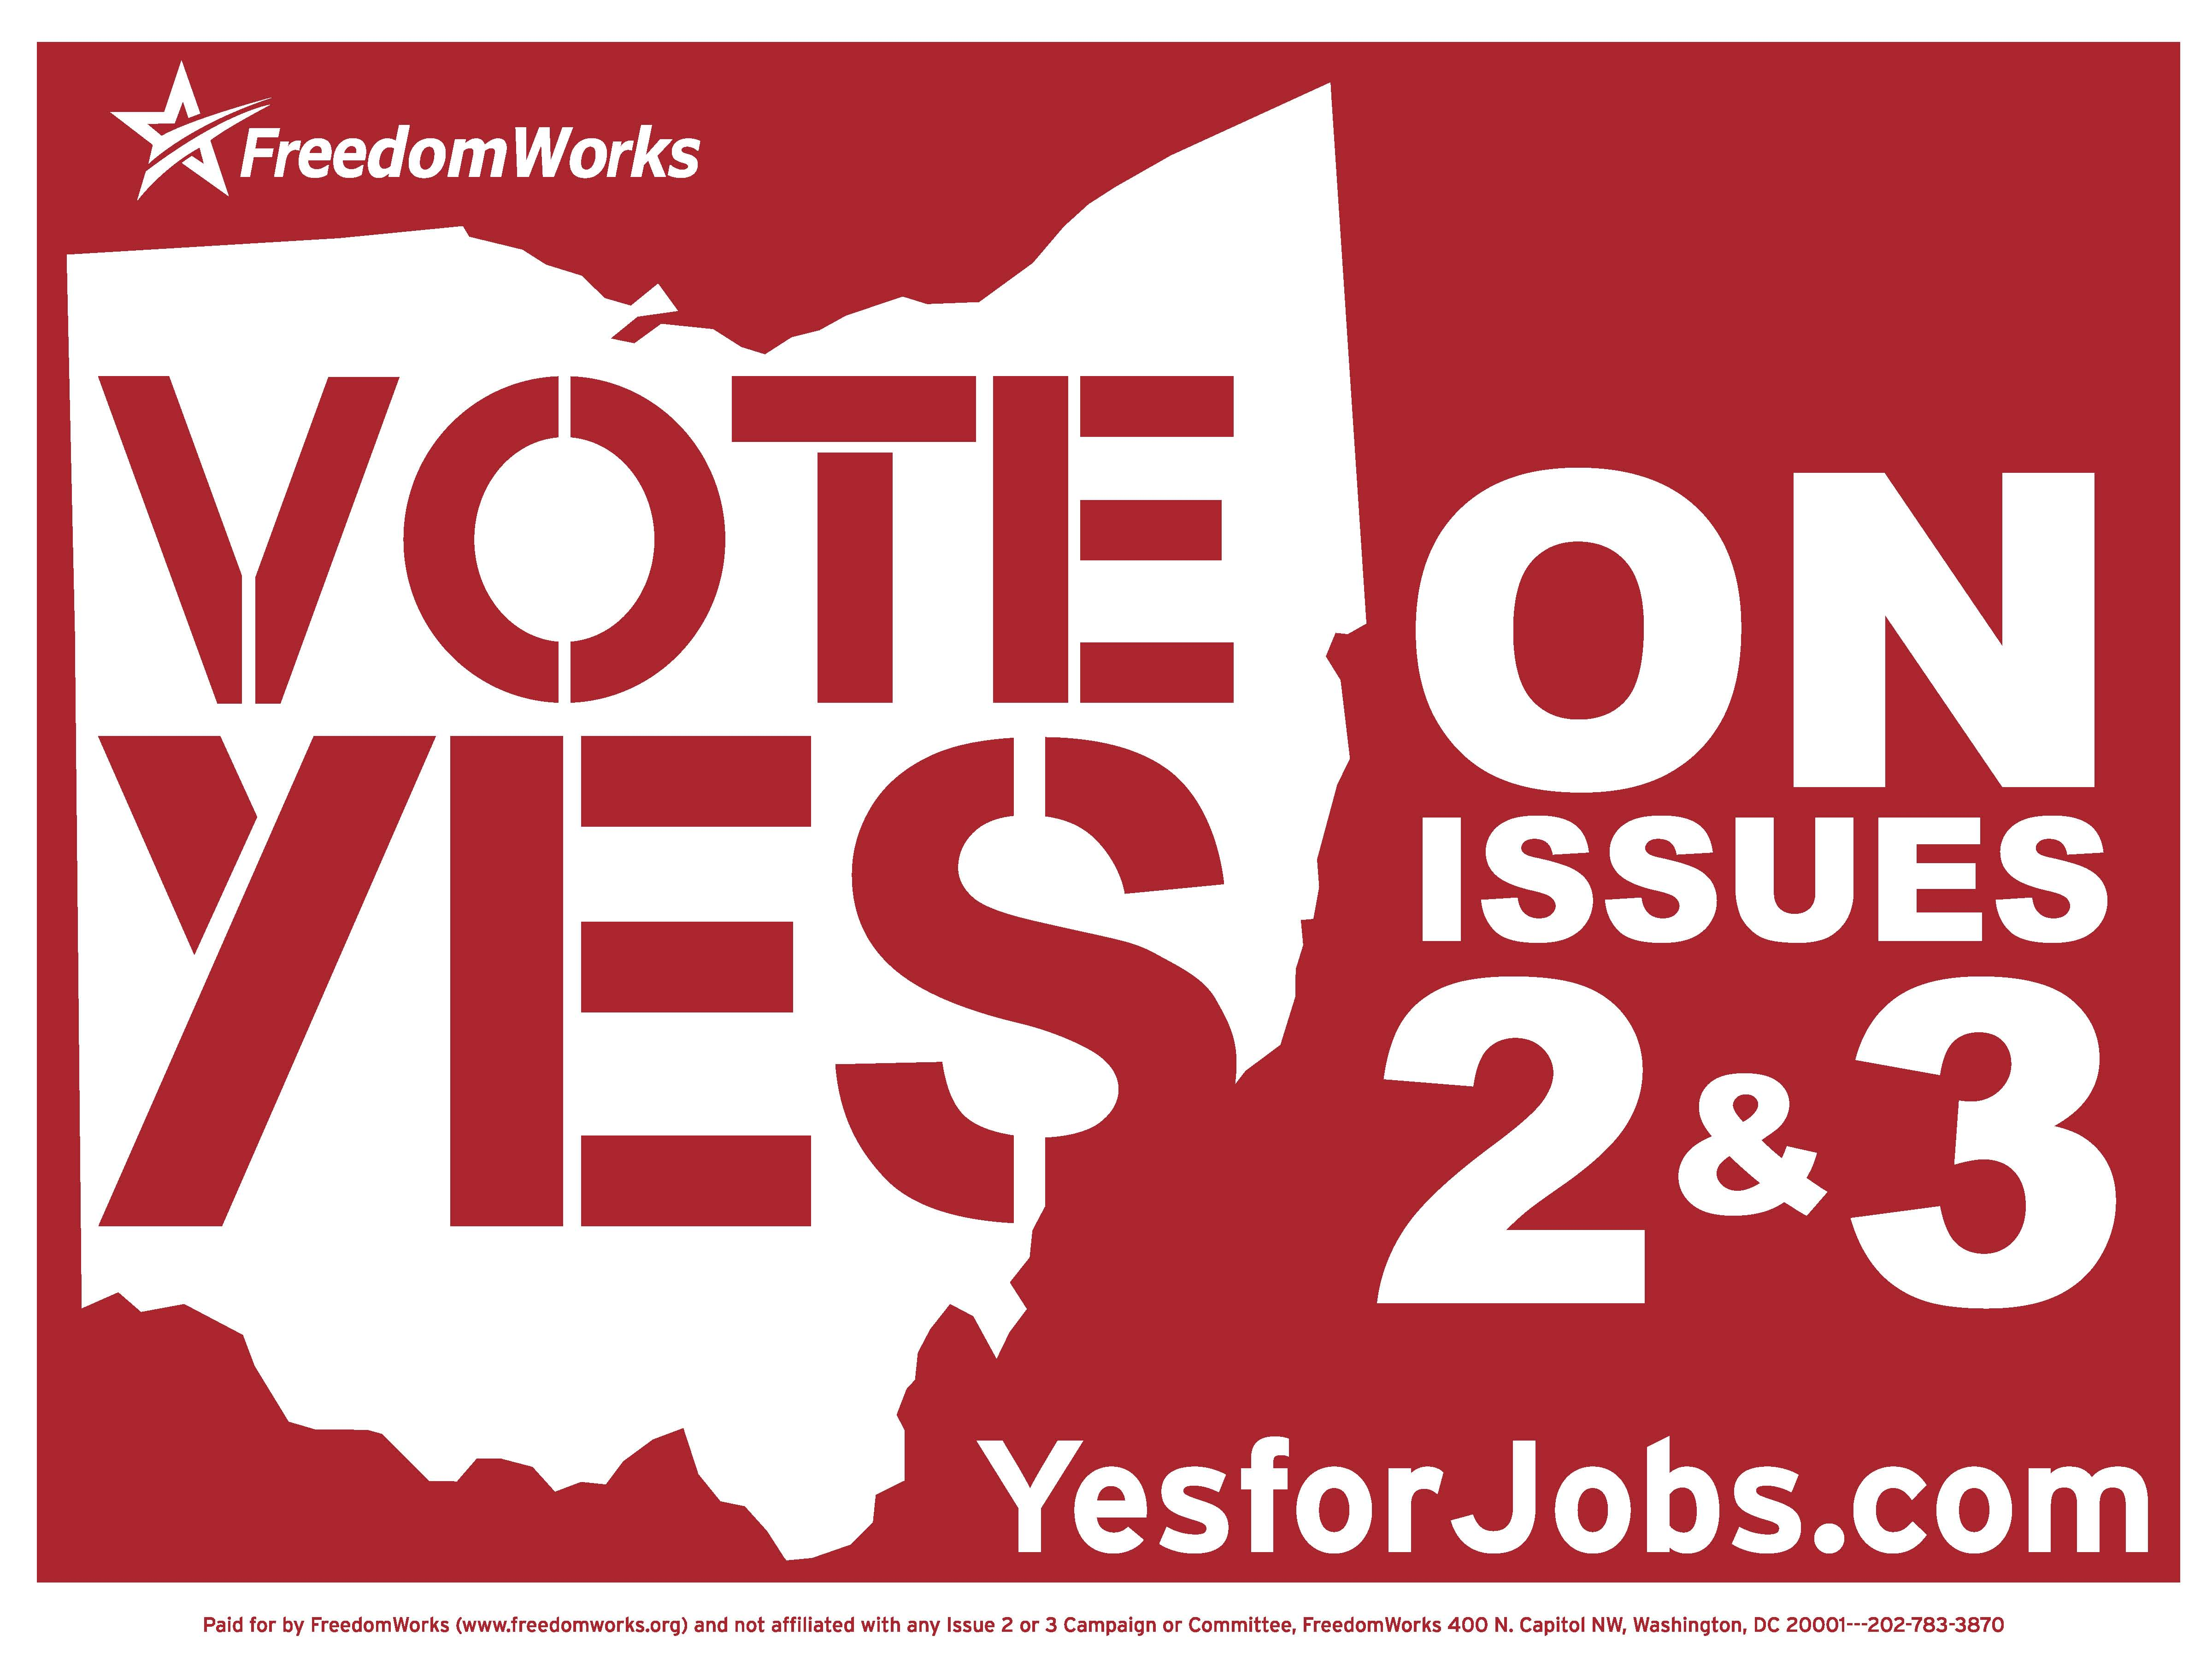 FreedomWorks Yes For Jobs